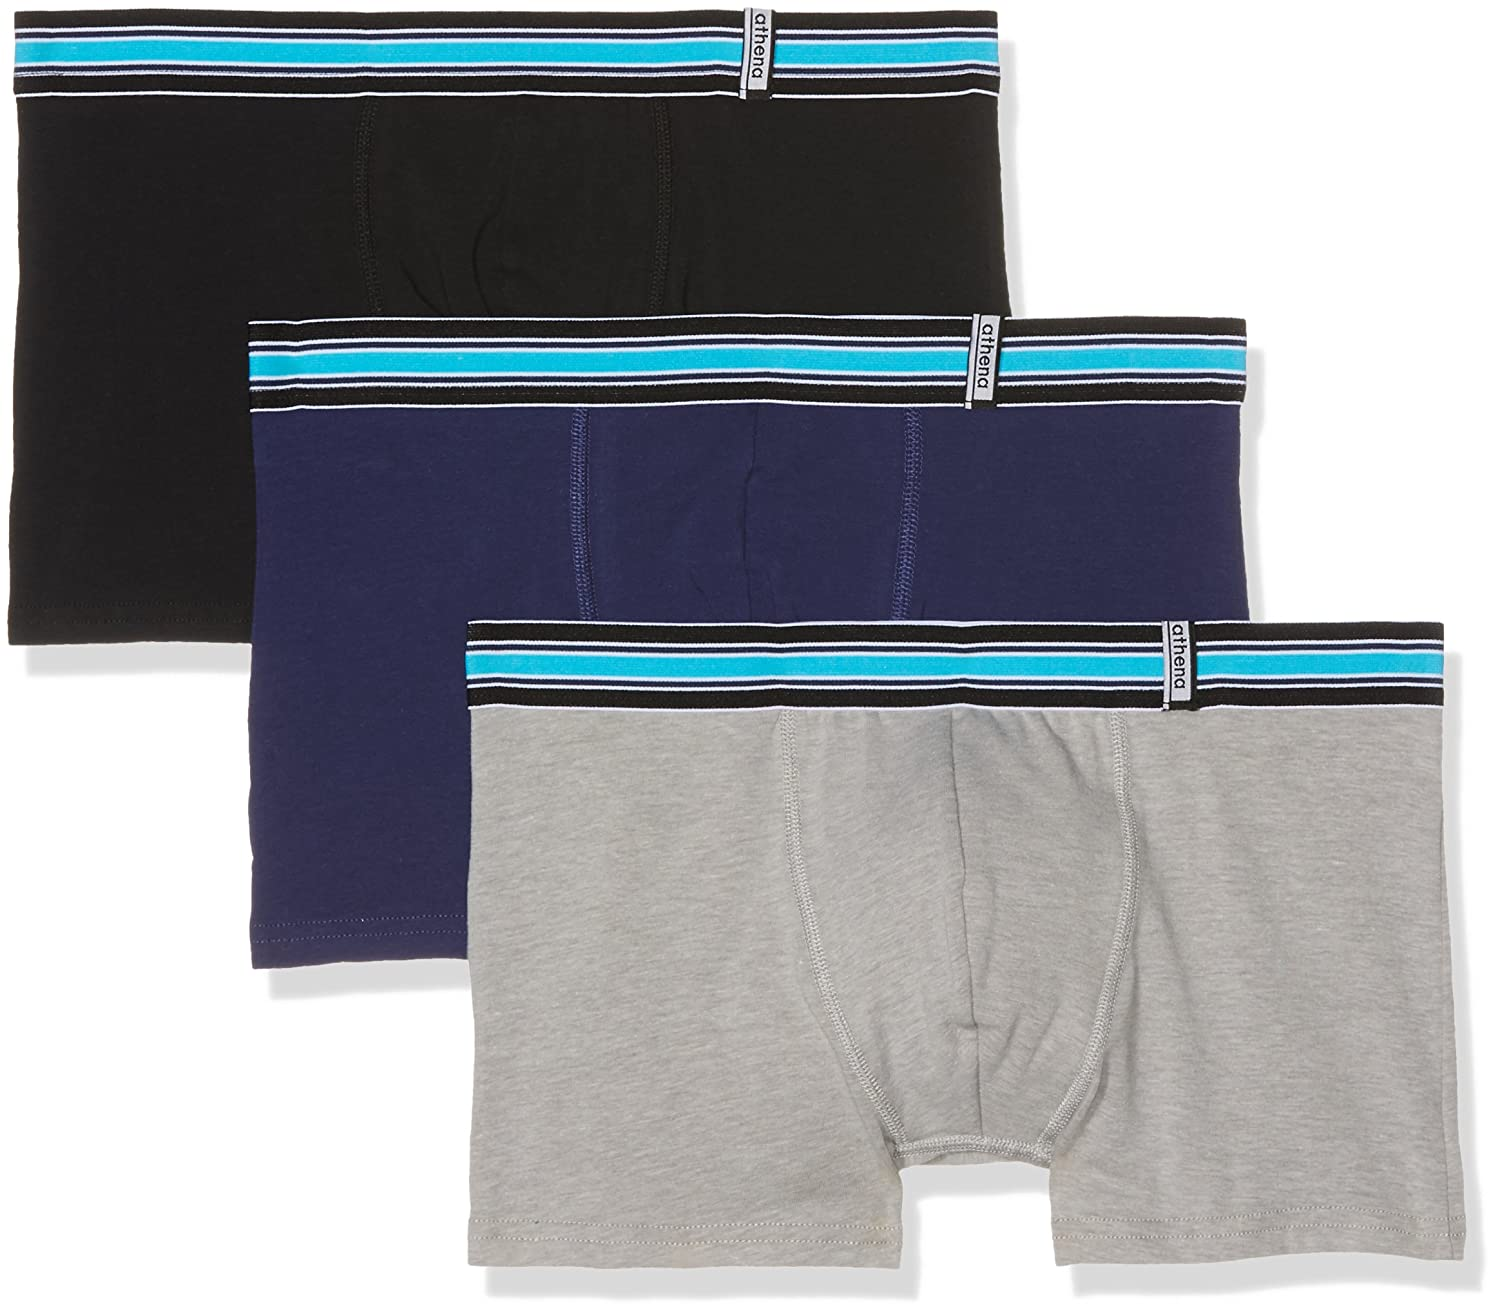 LIABEL Men's A8750 T744 Boxer Briefs